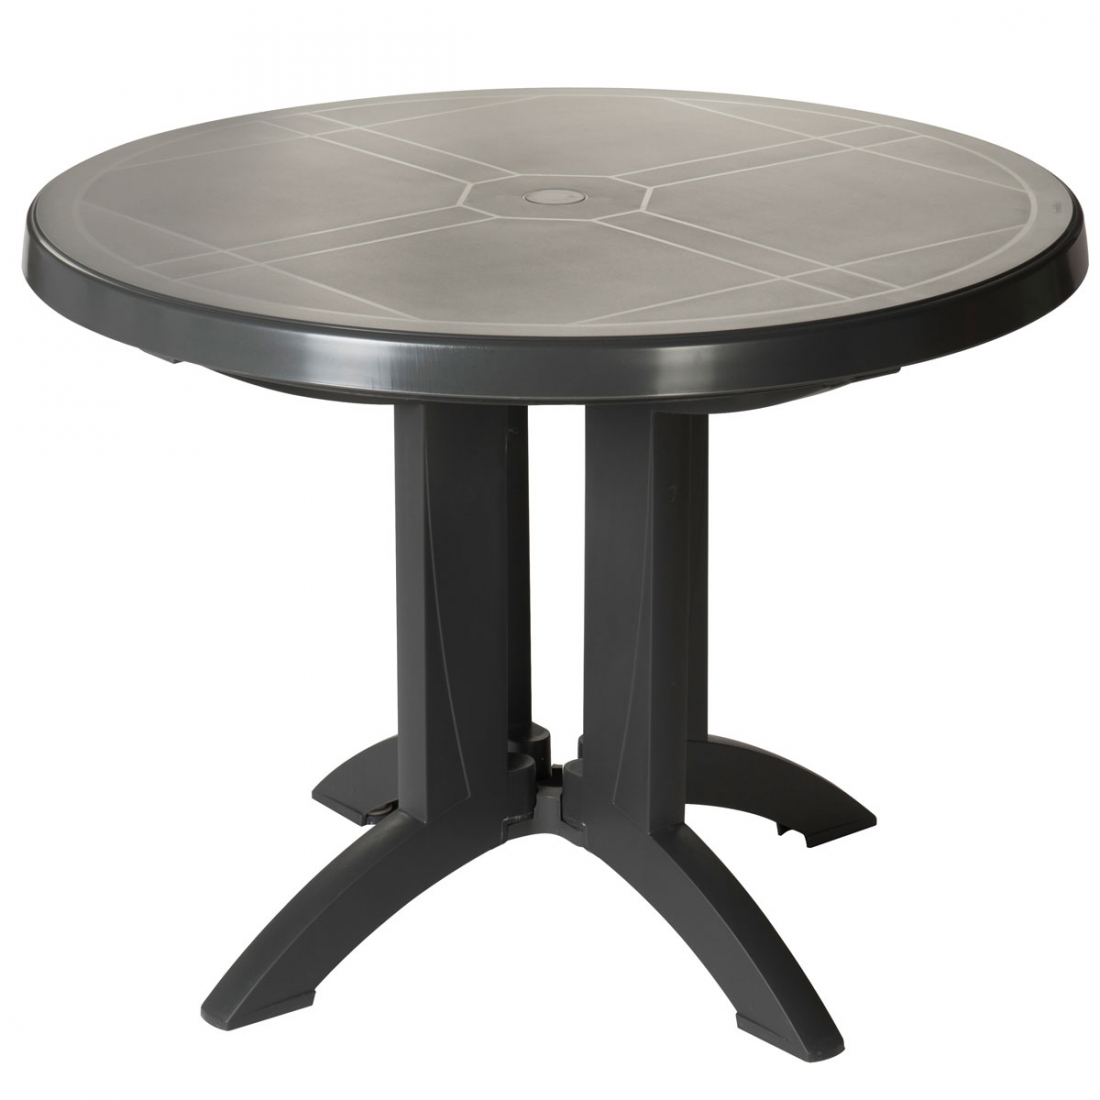 Stunning table ronde de jardin grosfillex ideas amazing for Table jardin ronde